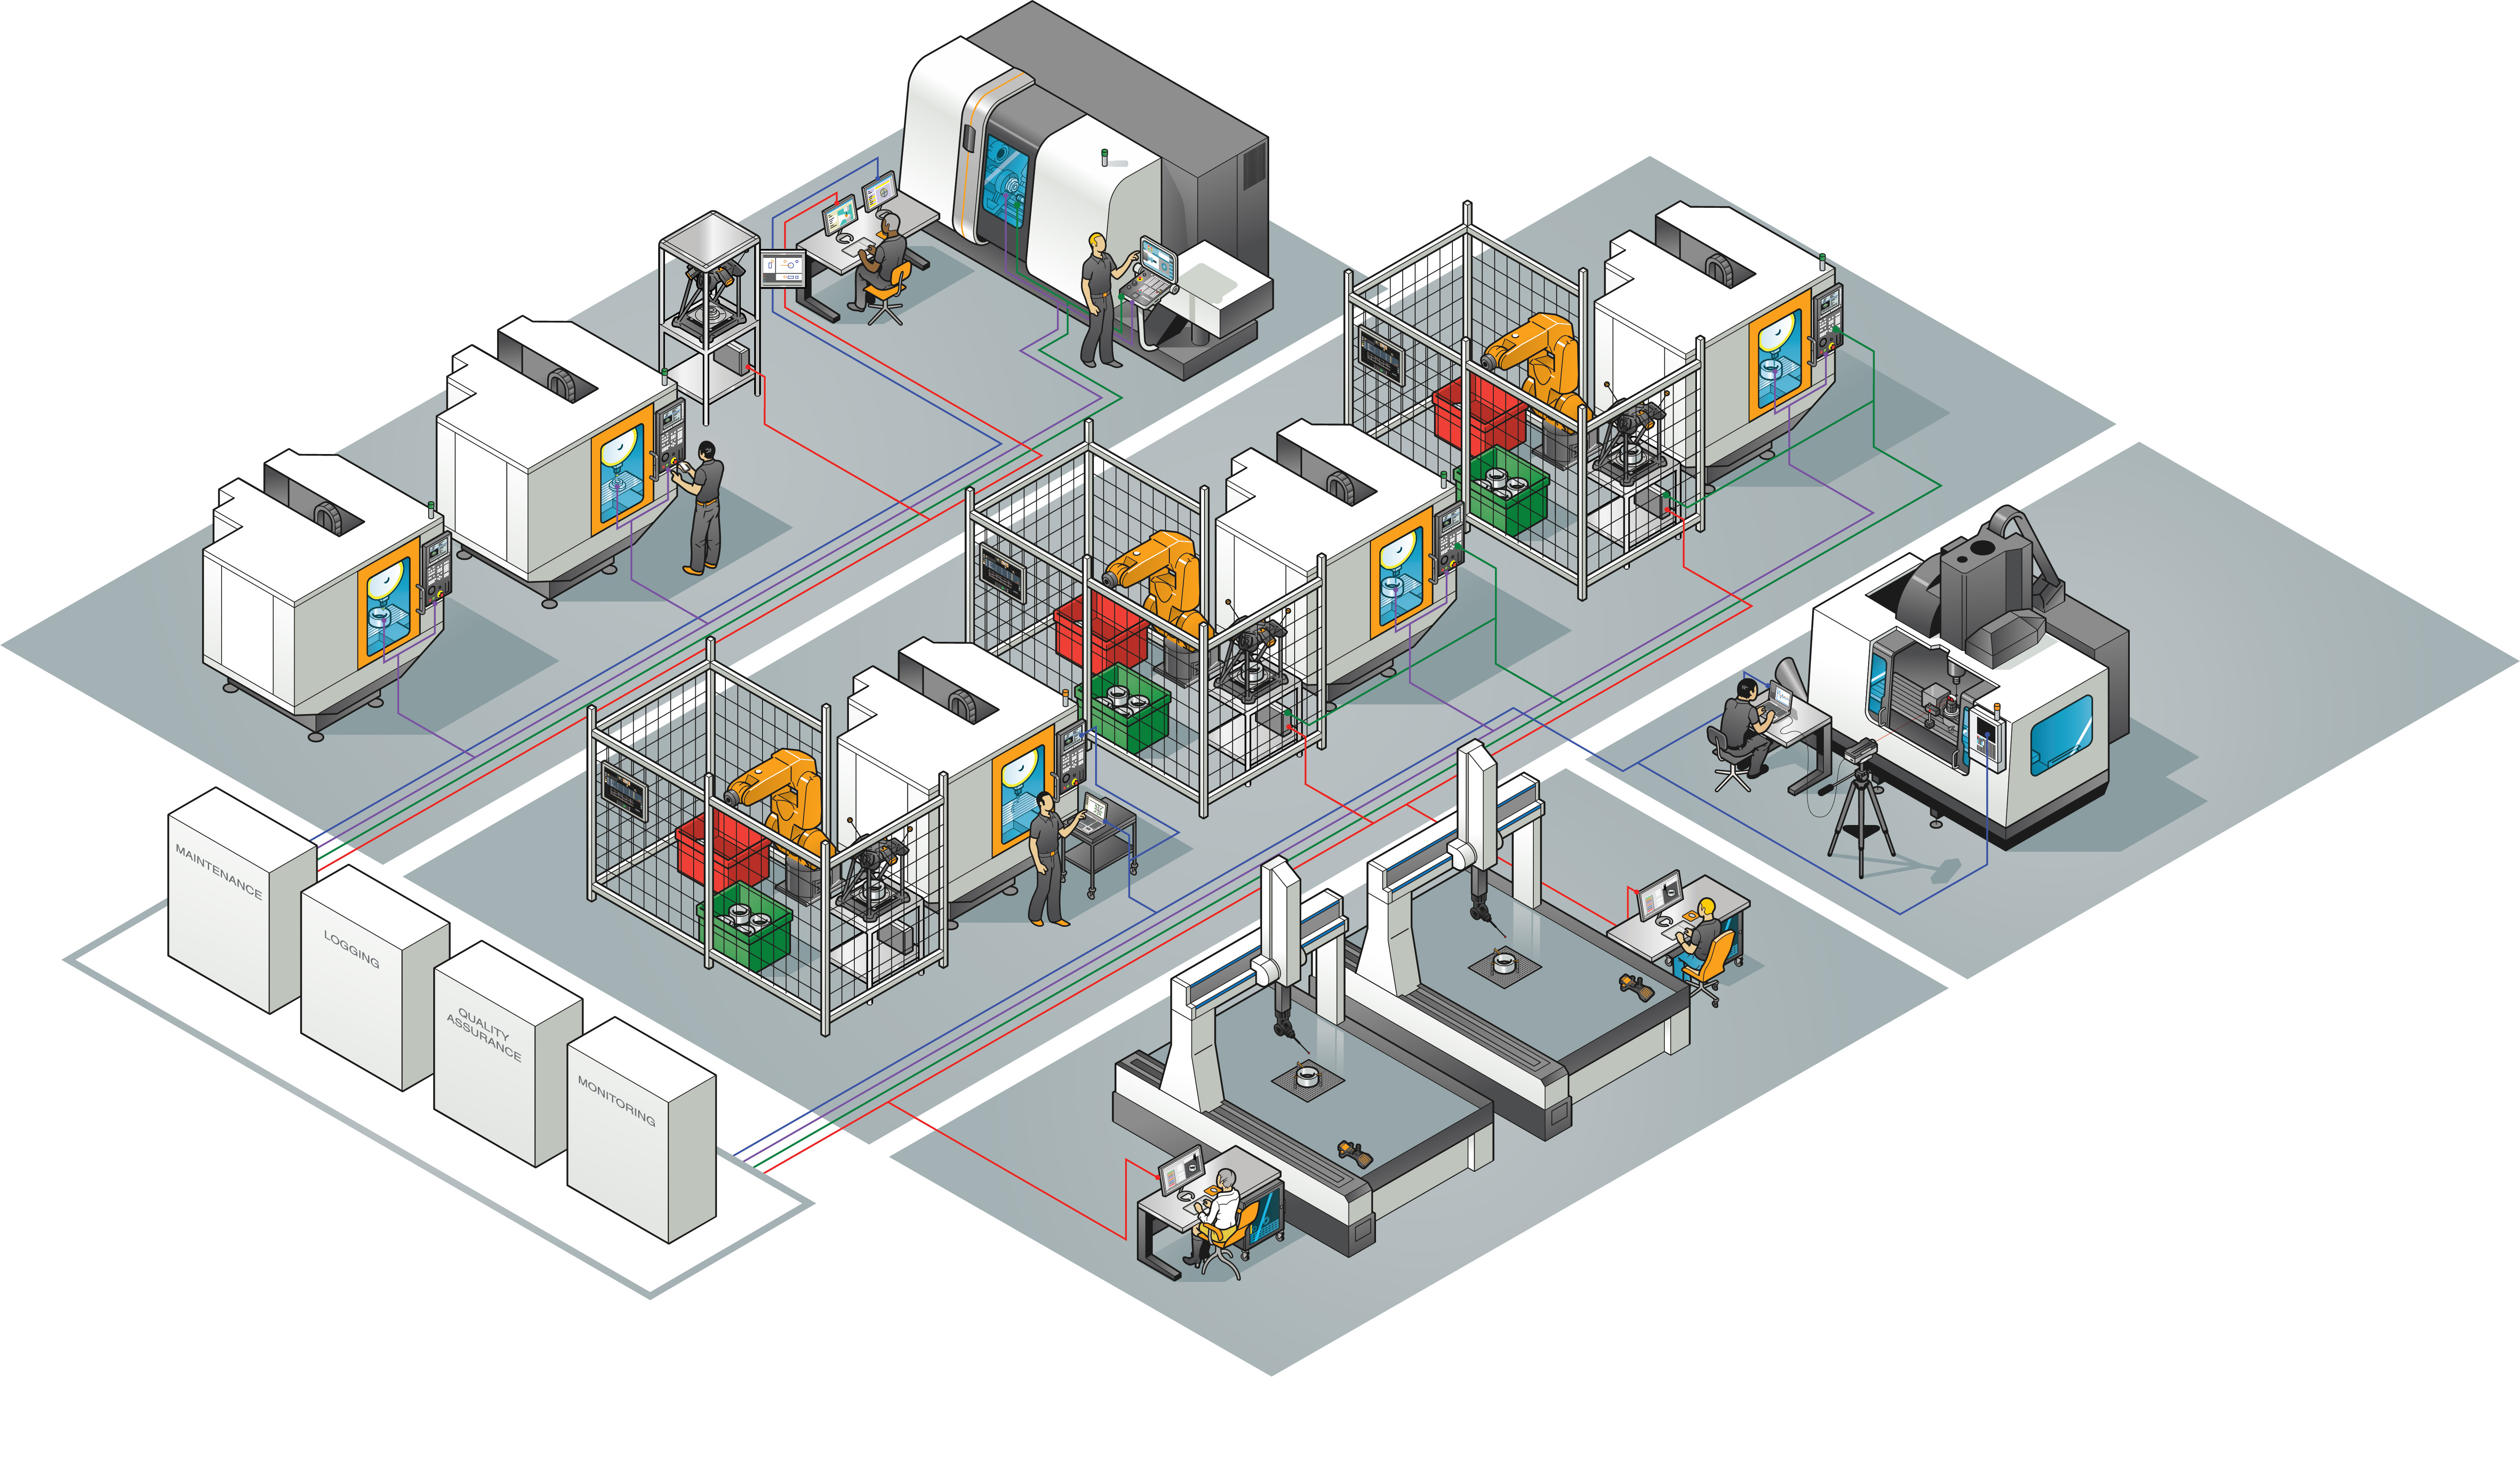 Renishaw Presents Its Latest Smart Factory Solutions at IMTS